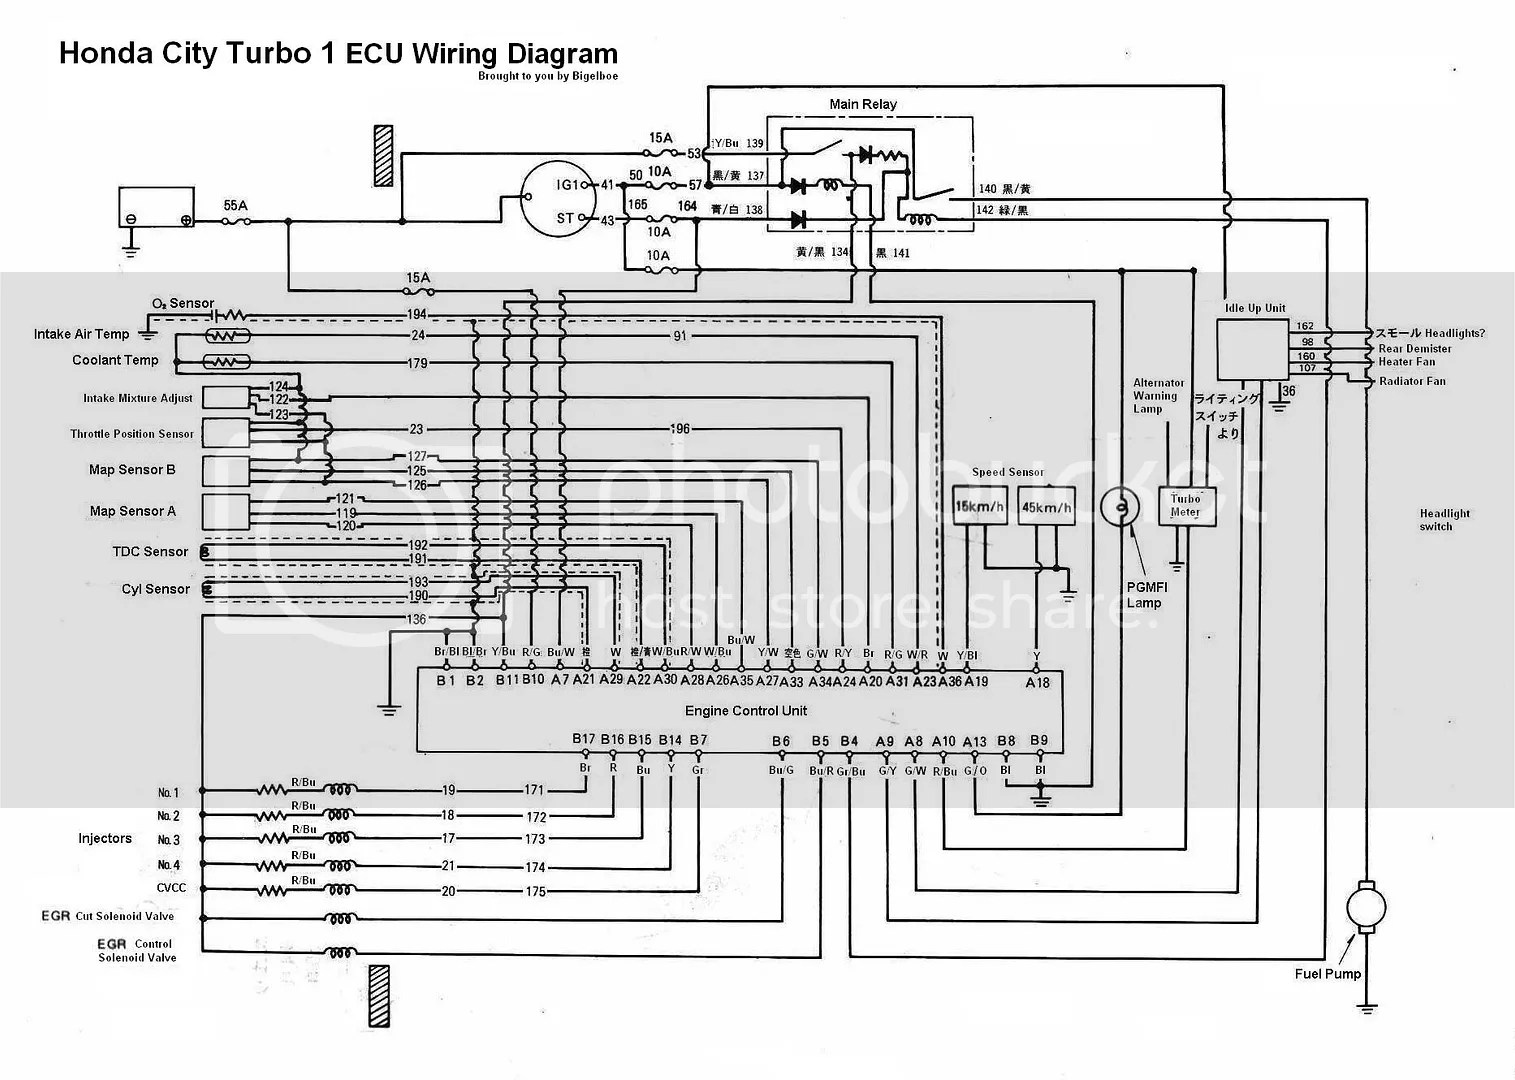 honda crv ecu wiring diagram nest room stat s2000